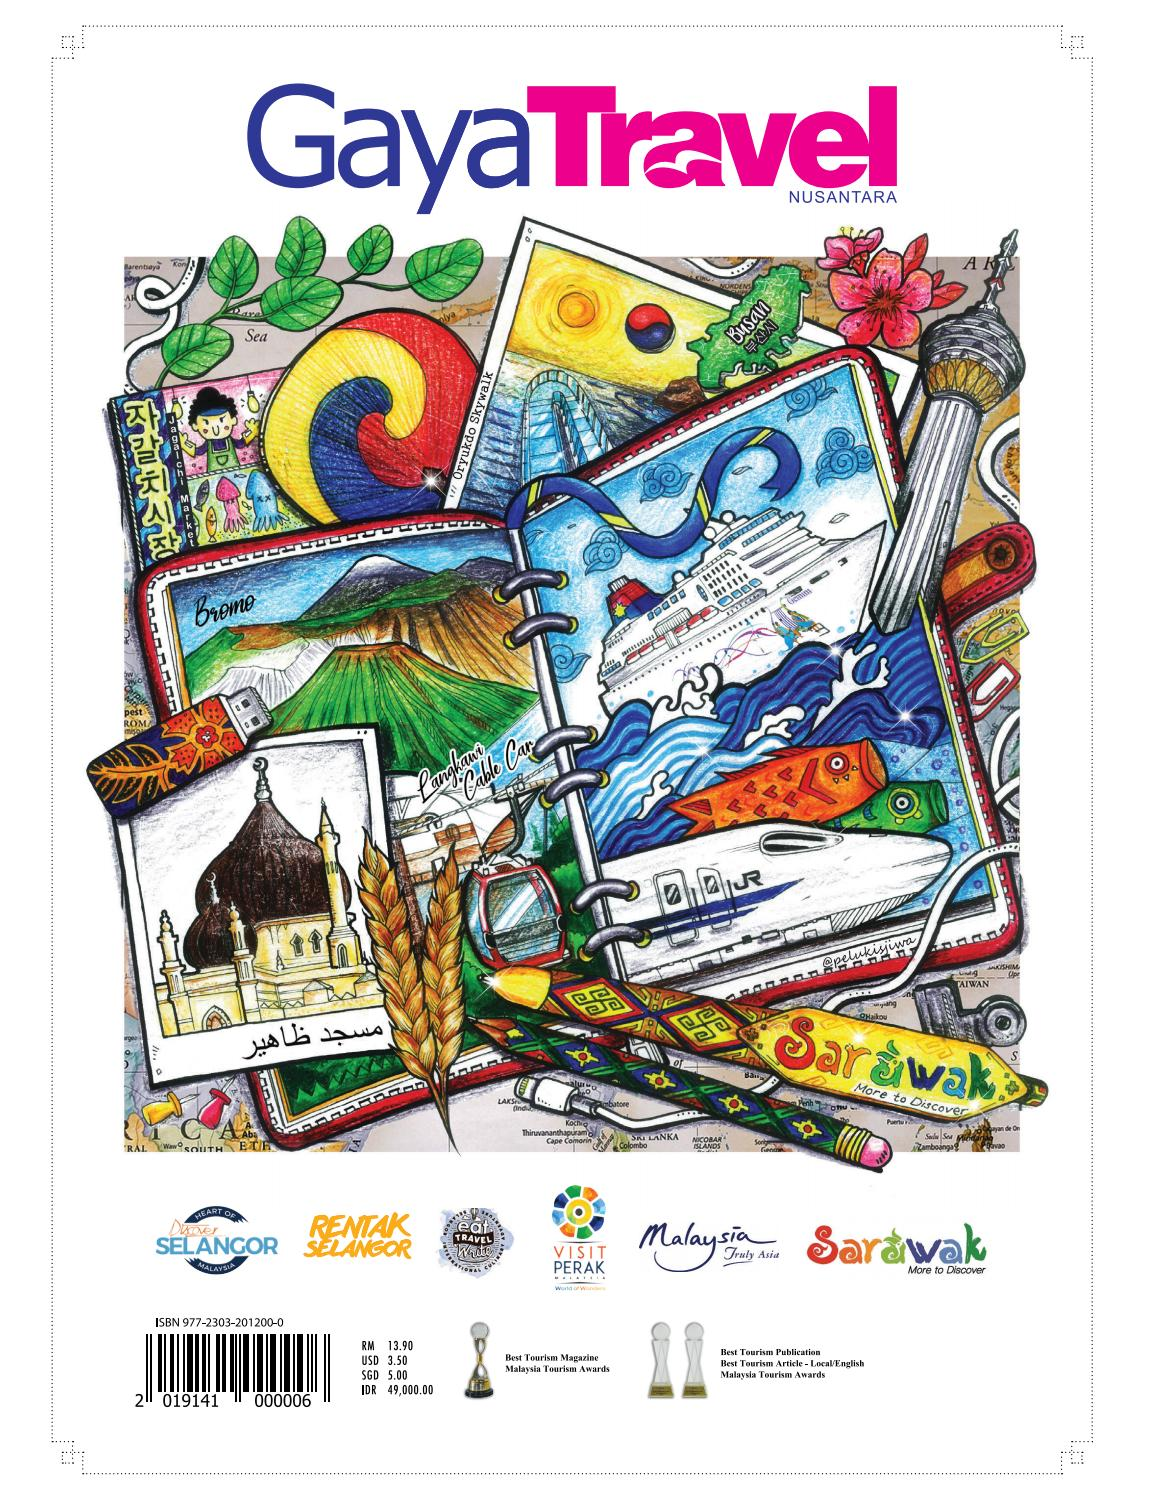 Gaya Travel Magazine 14 1 By Chandi Media Group Issuu